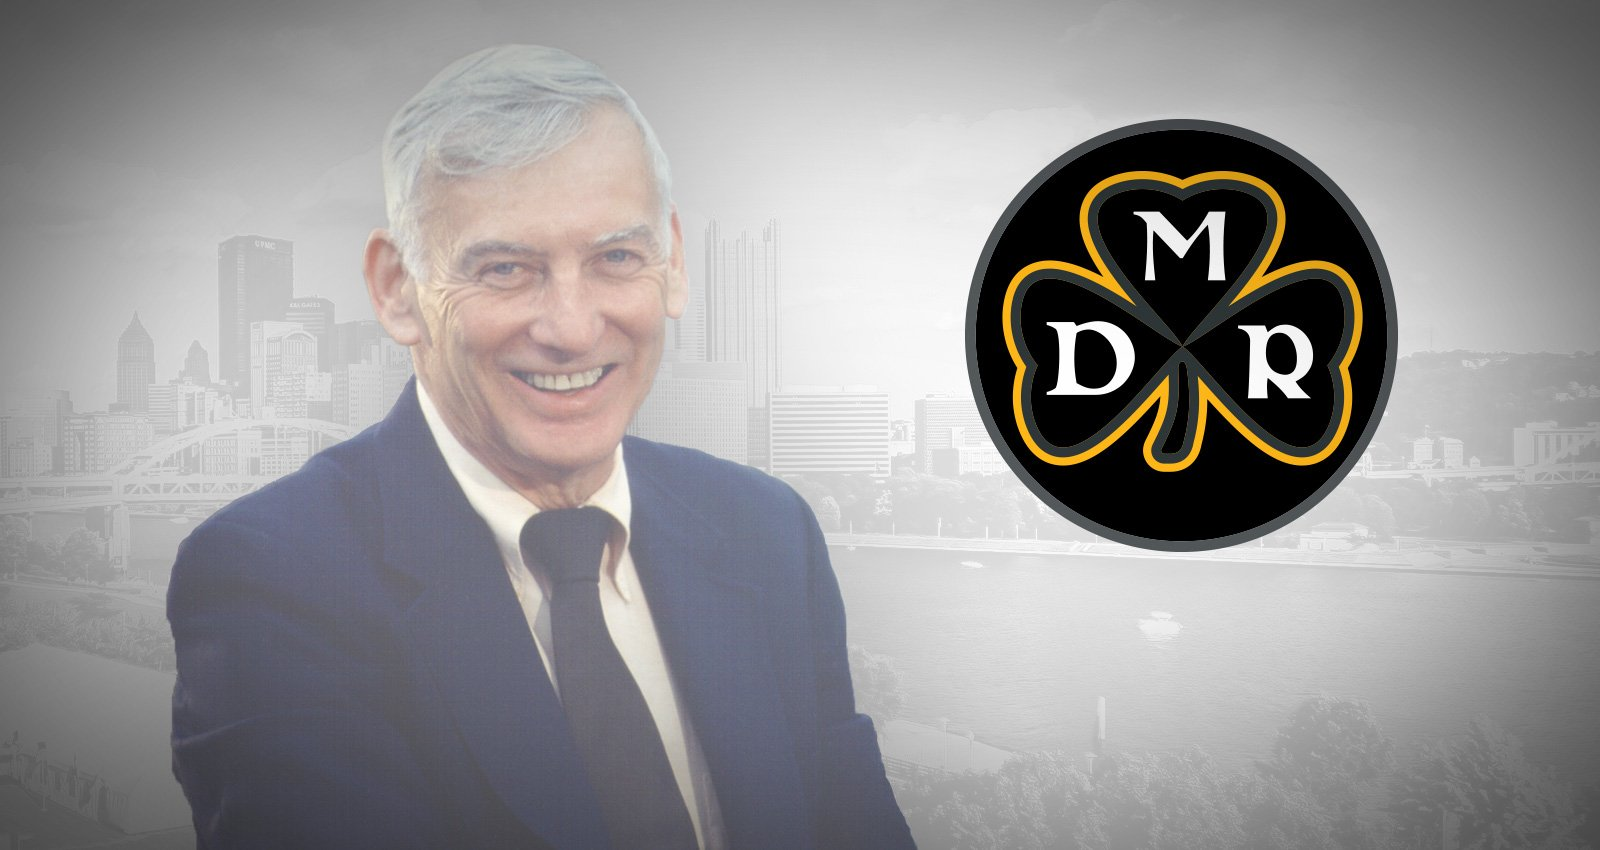 We will wear a patch on our jerseys this season to honor Dan Rooney.  MORE: https://t.co/SRUWiTQUtC https://t.co/d2cSr2xEbo